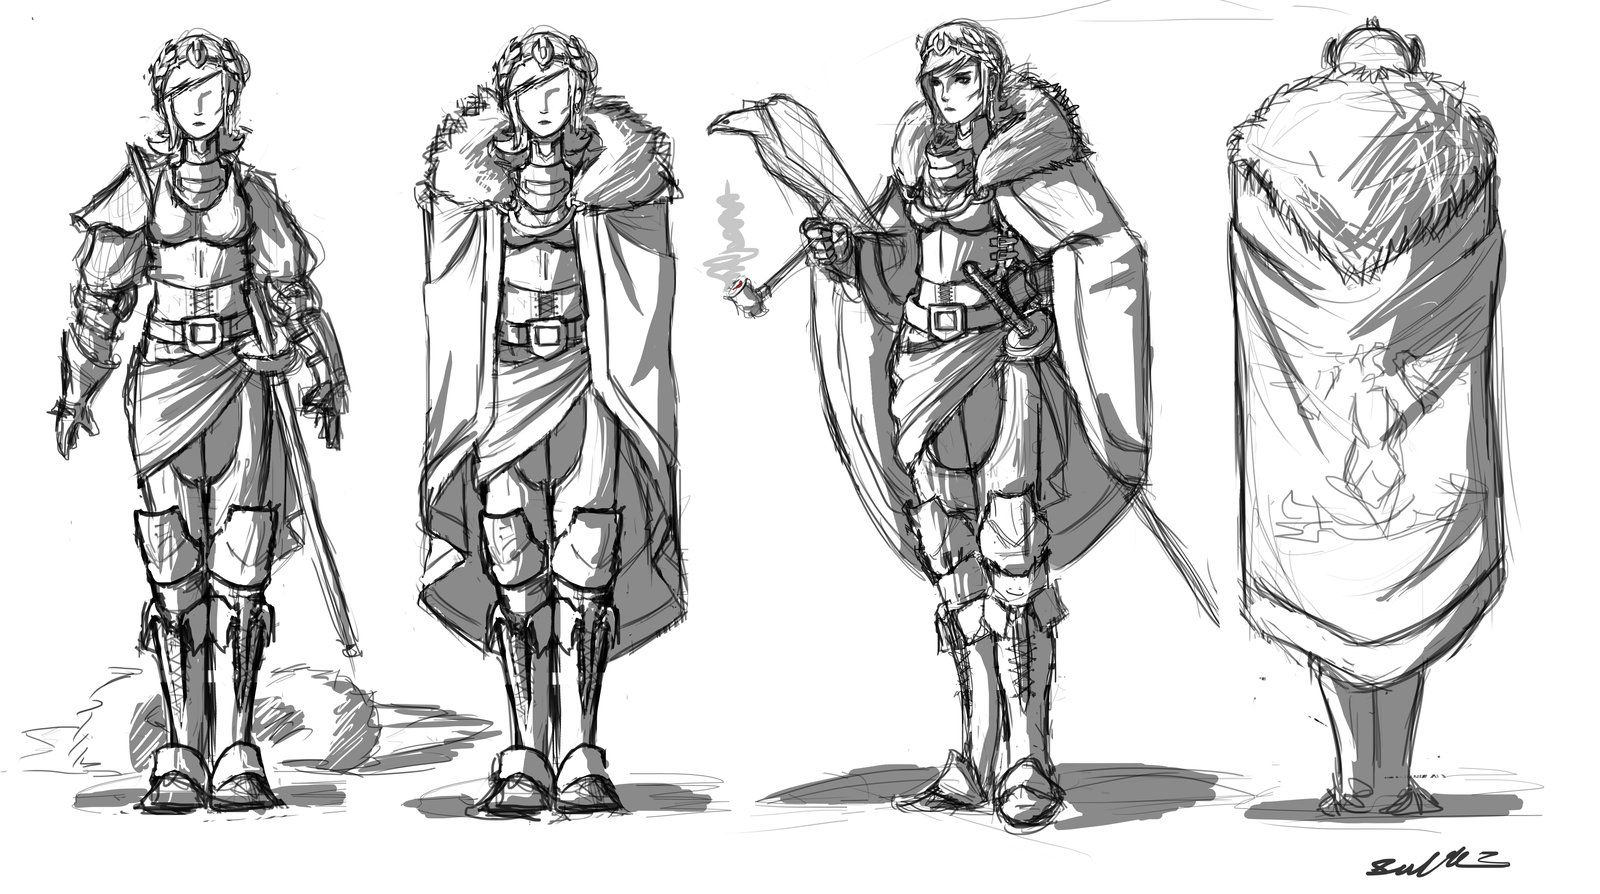 Pin by Tanner Schade on Anime drawings/ drawings   Armor ...